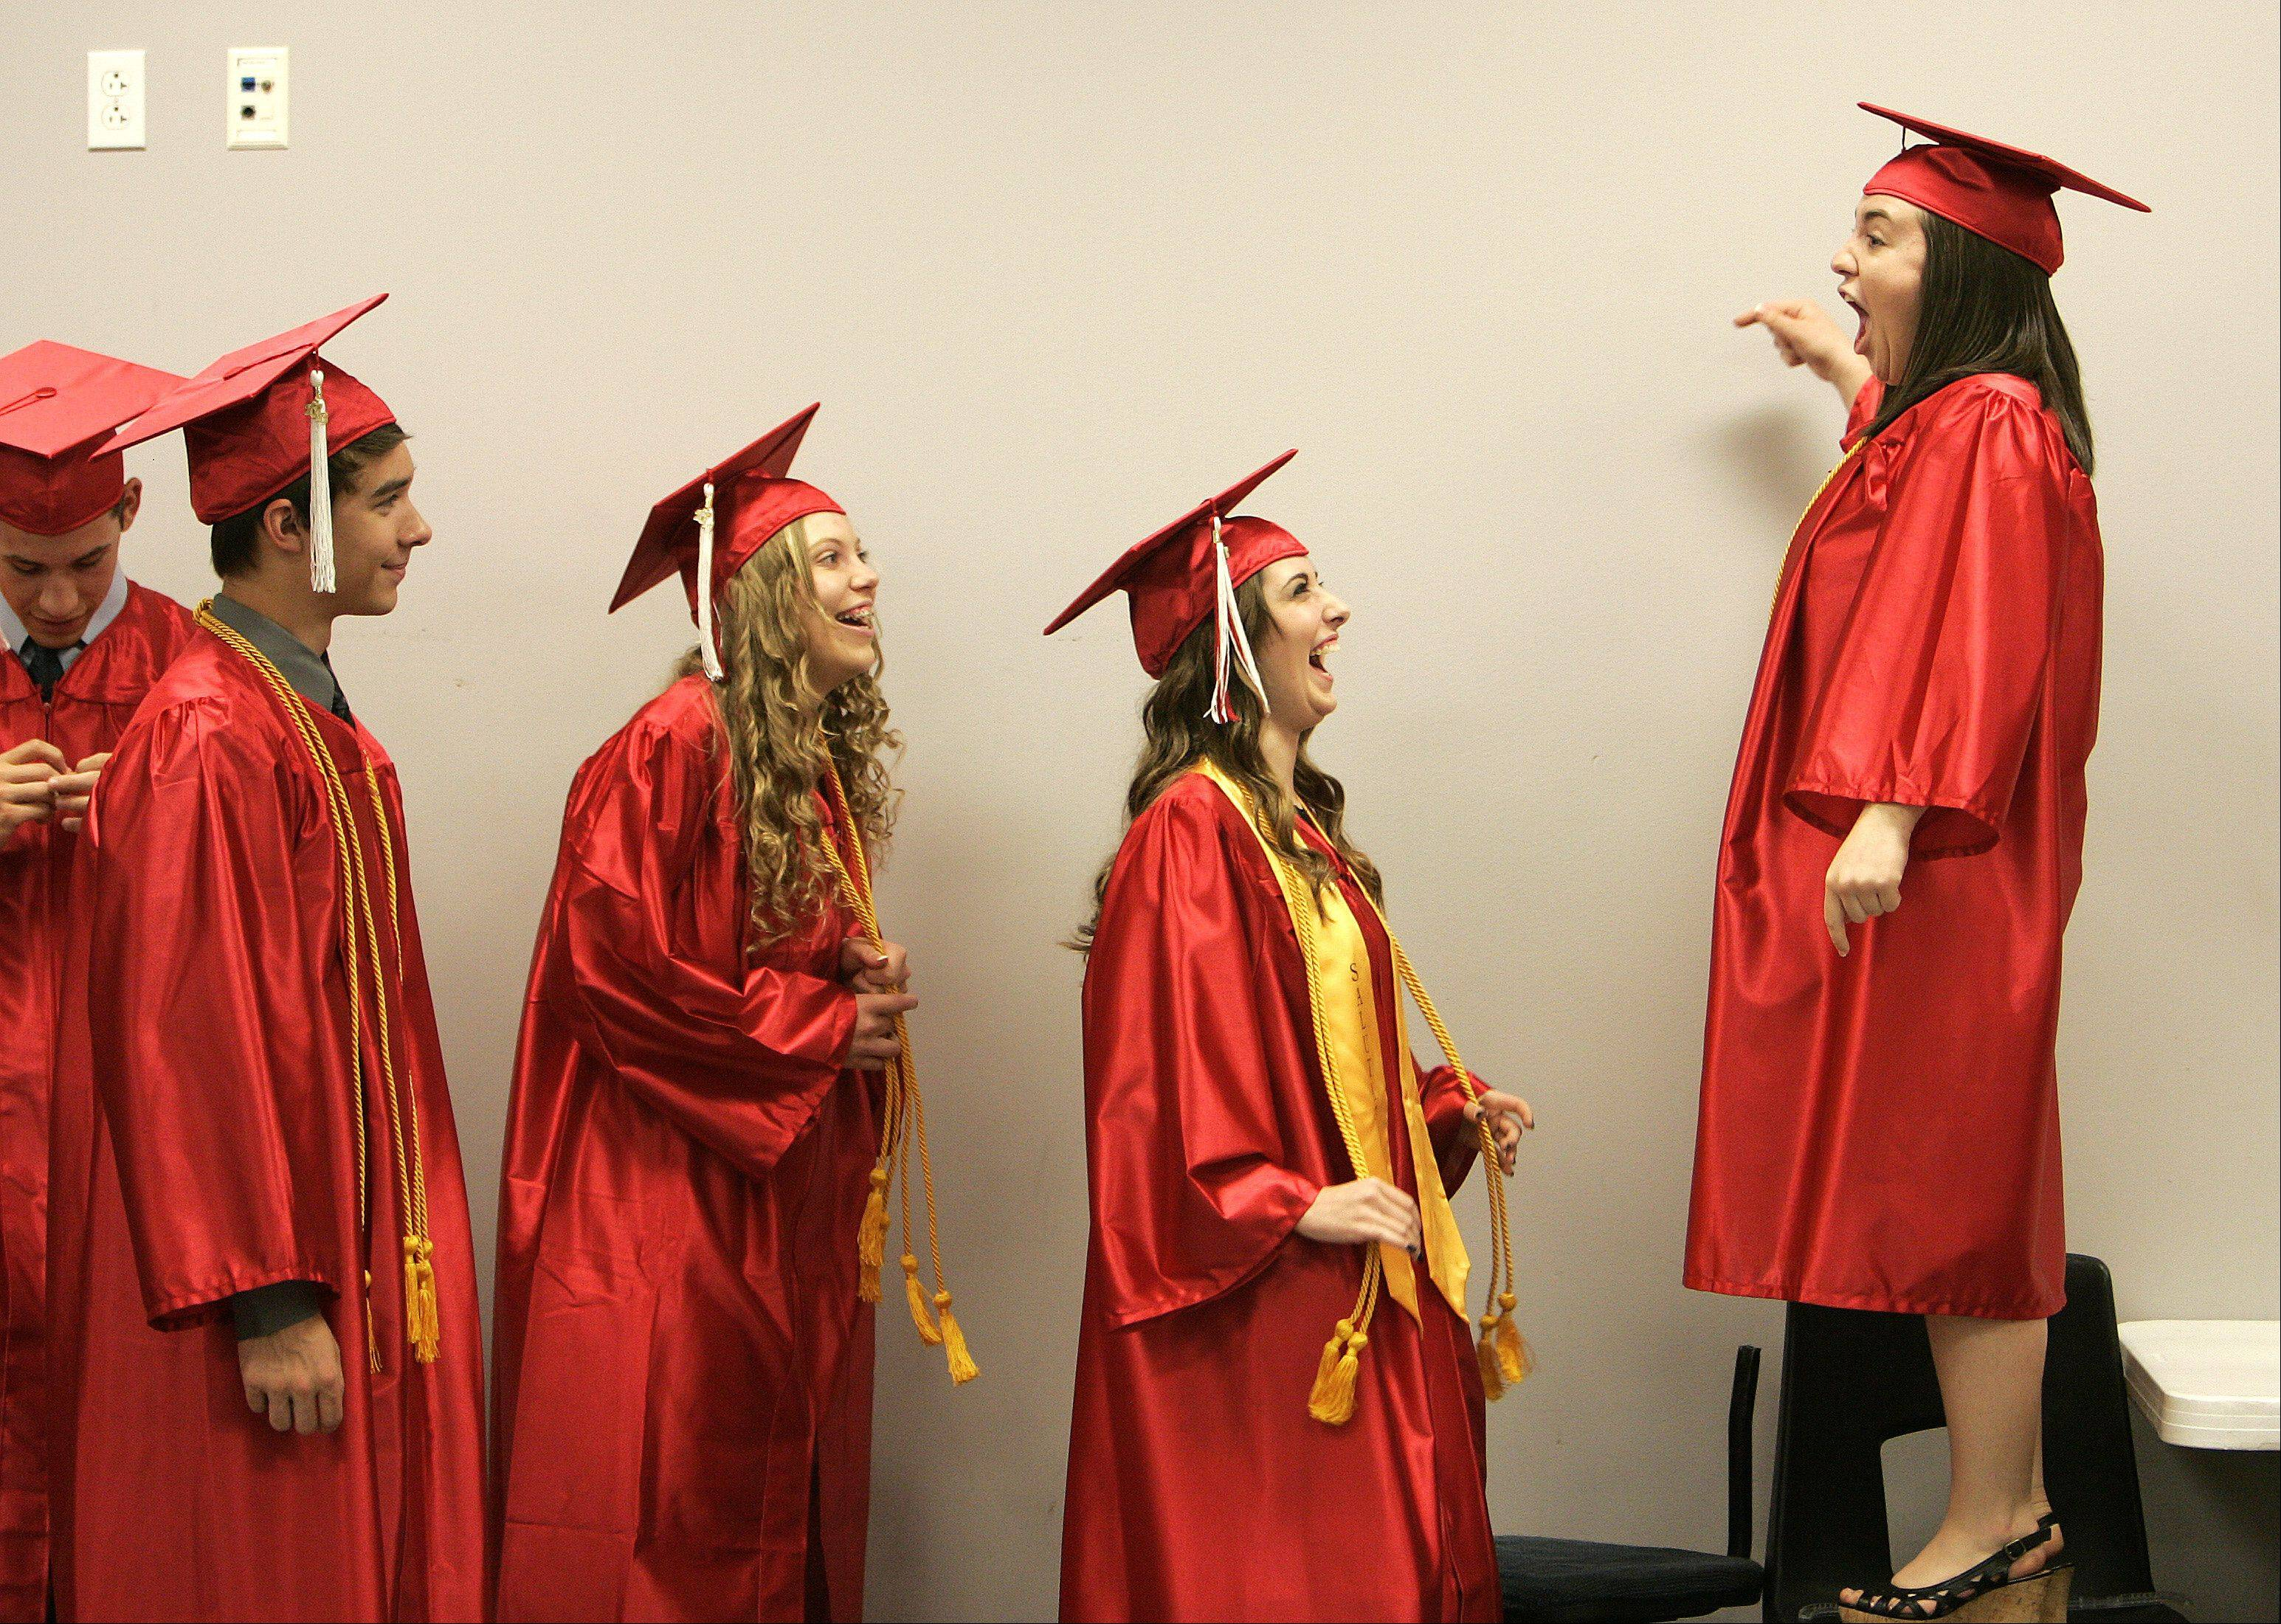 Keagan Johnson, right, jokingly lectures some of her fellow students before Aurora Christian's commencement ceremony Sunday, May 26, 2013 in Aurora.